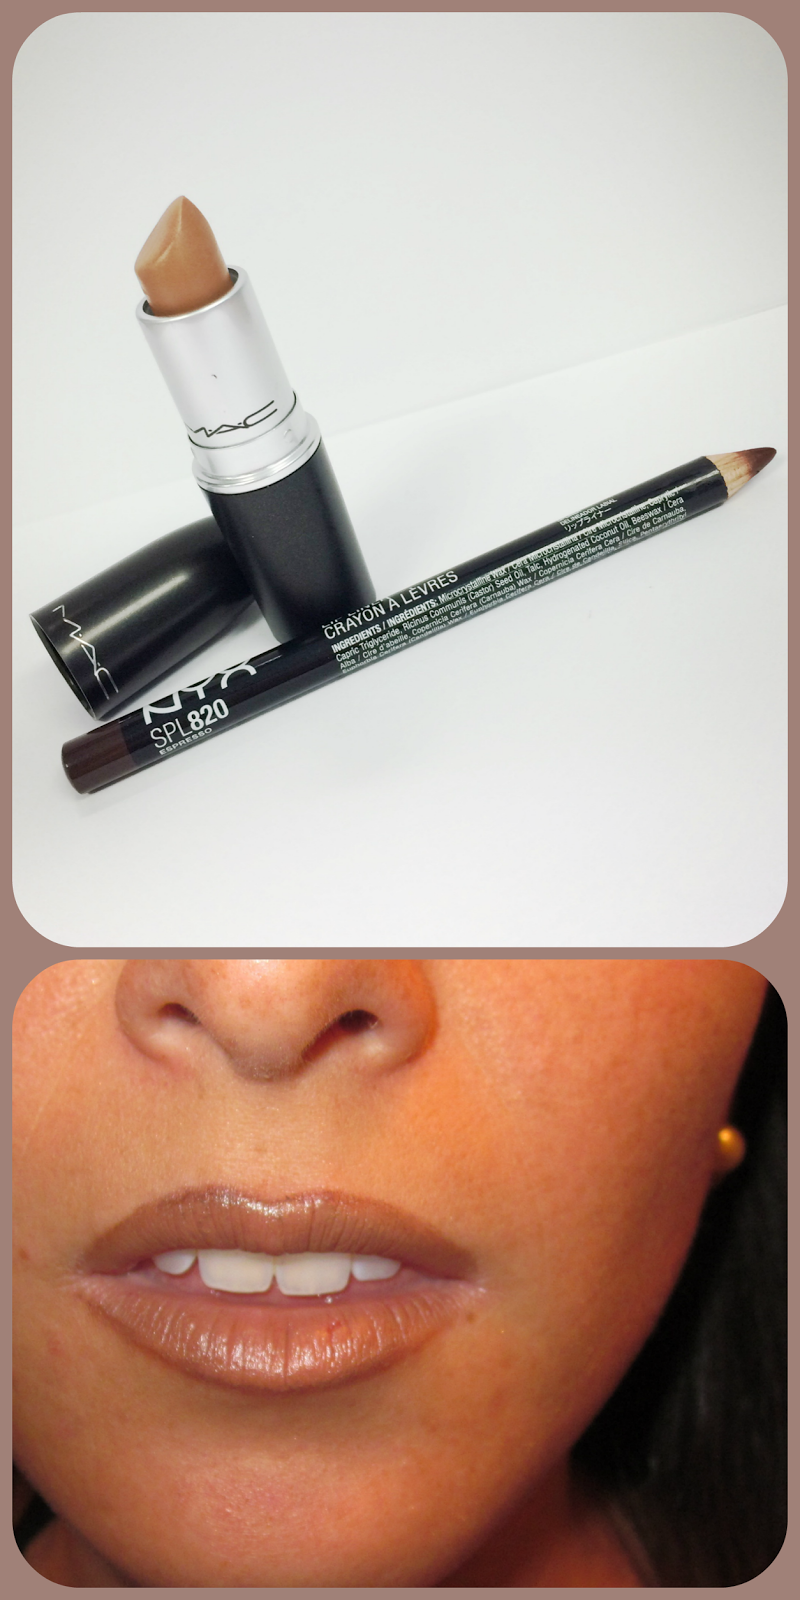 Perfect neutral lipstick and liner combo - Mac Siss and NYX lipliner in Espresso which is also a dupe for Mac Chestnut lipliner. Perfect colors for medium to dark skinned girls.  Via thebeetique.blogspot.com